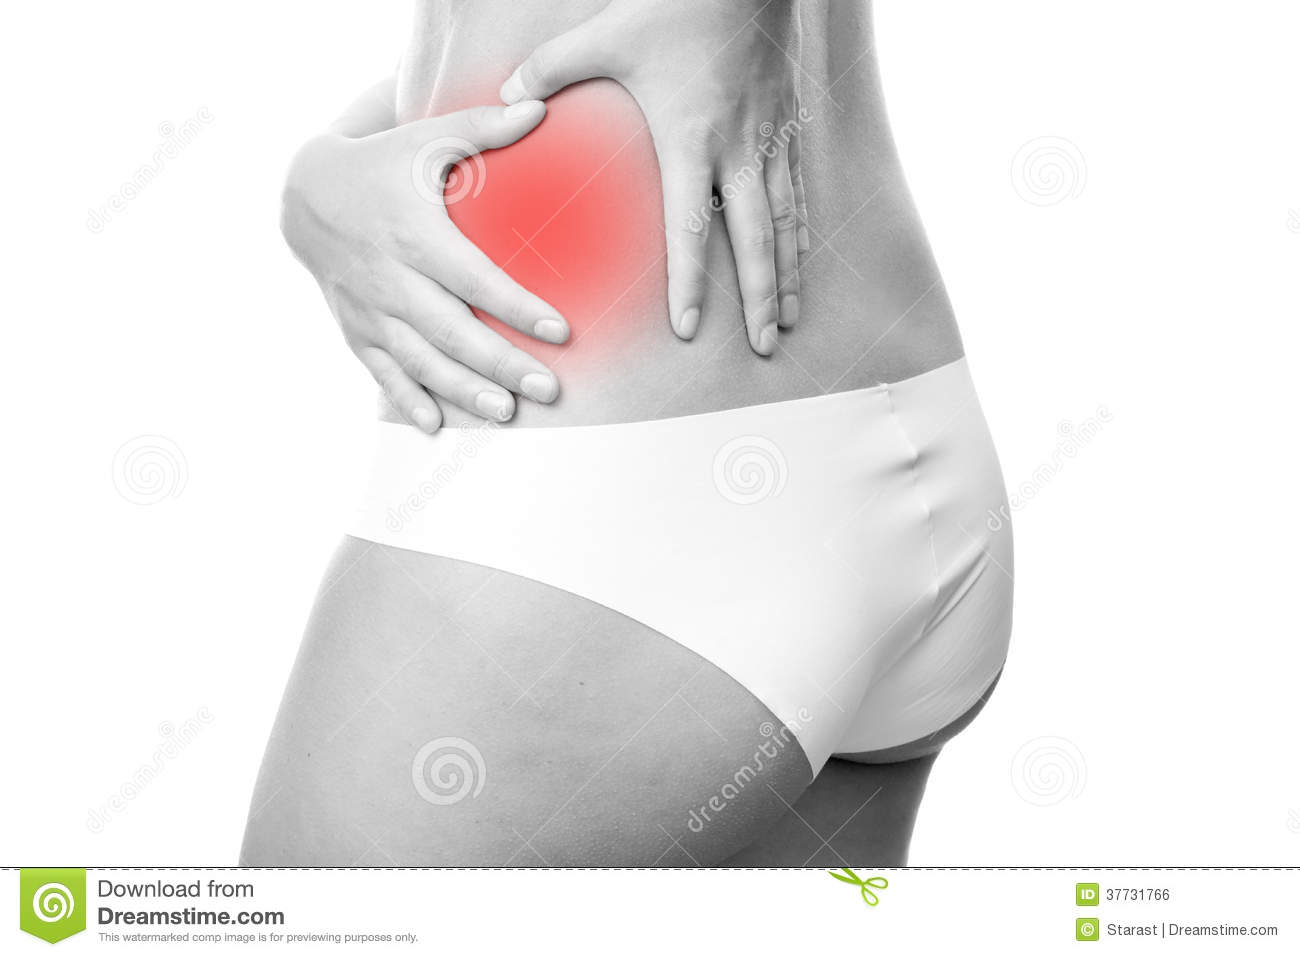 Pain in left side of body royalty free stock image image for Douleur au genou gauche interieur